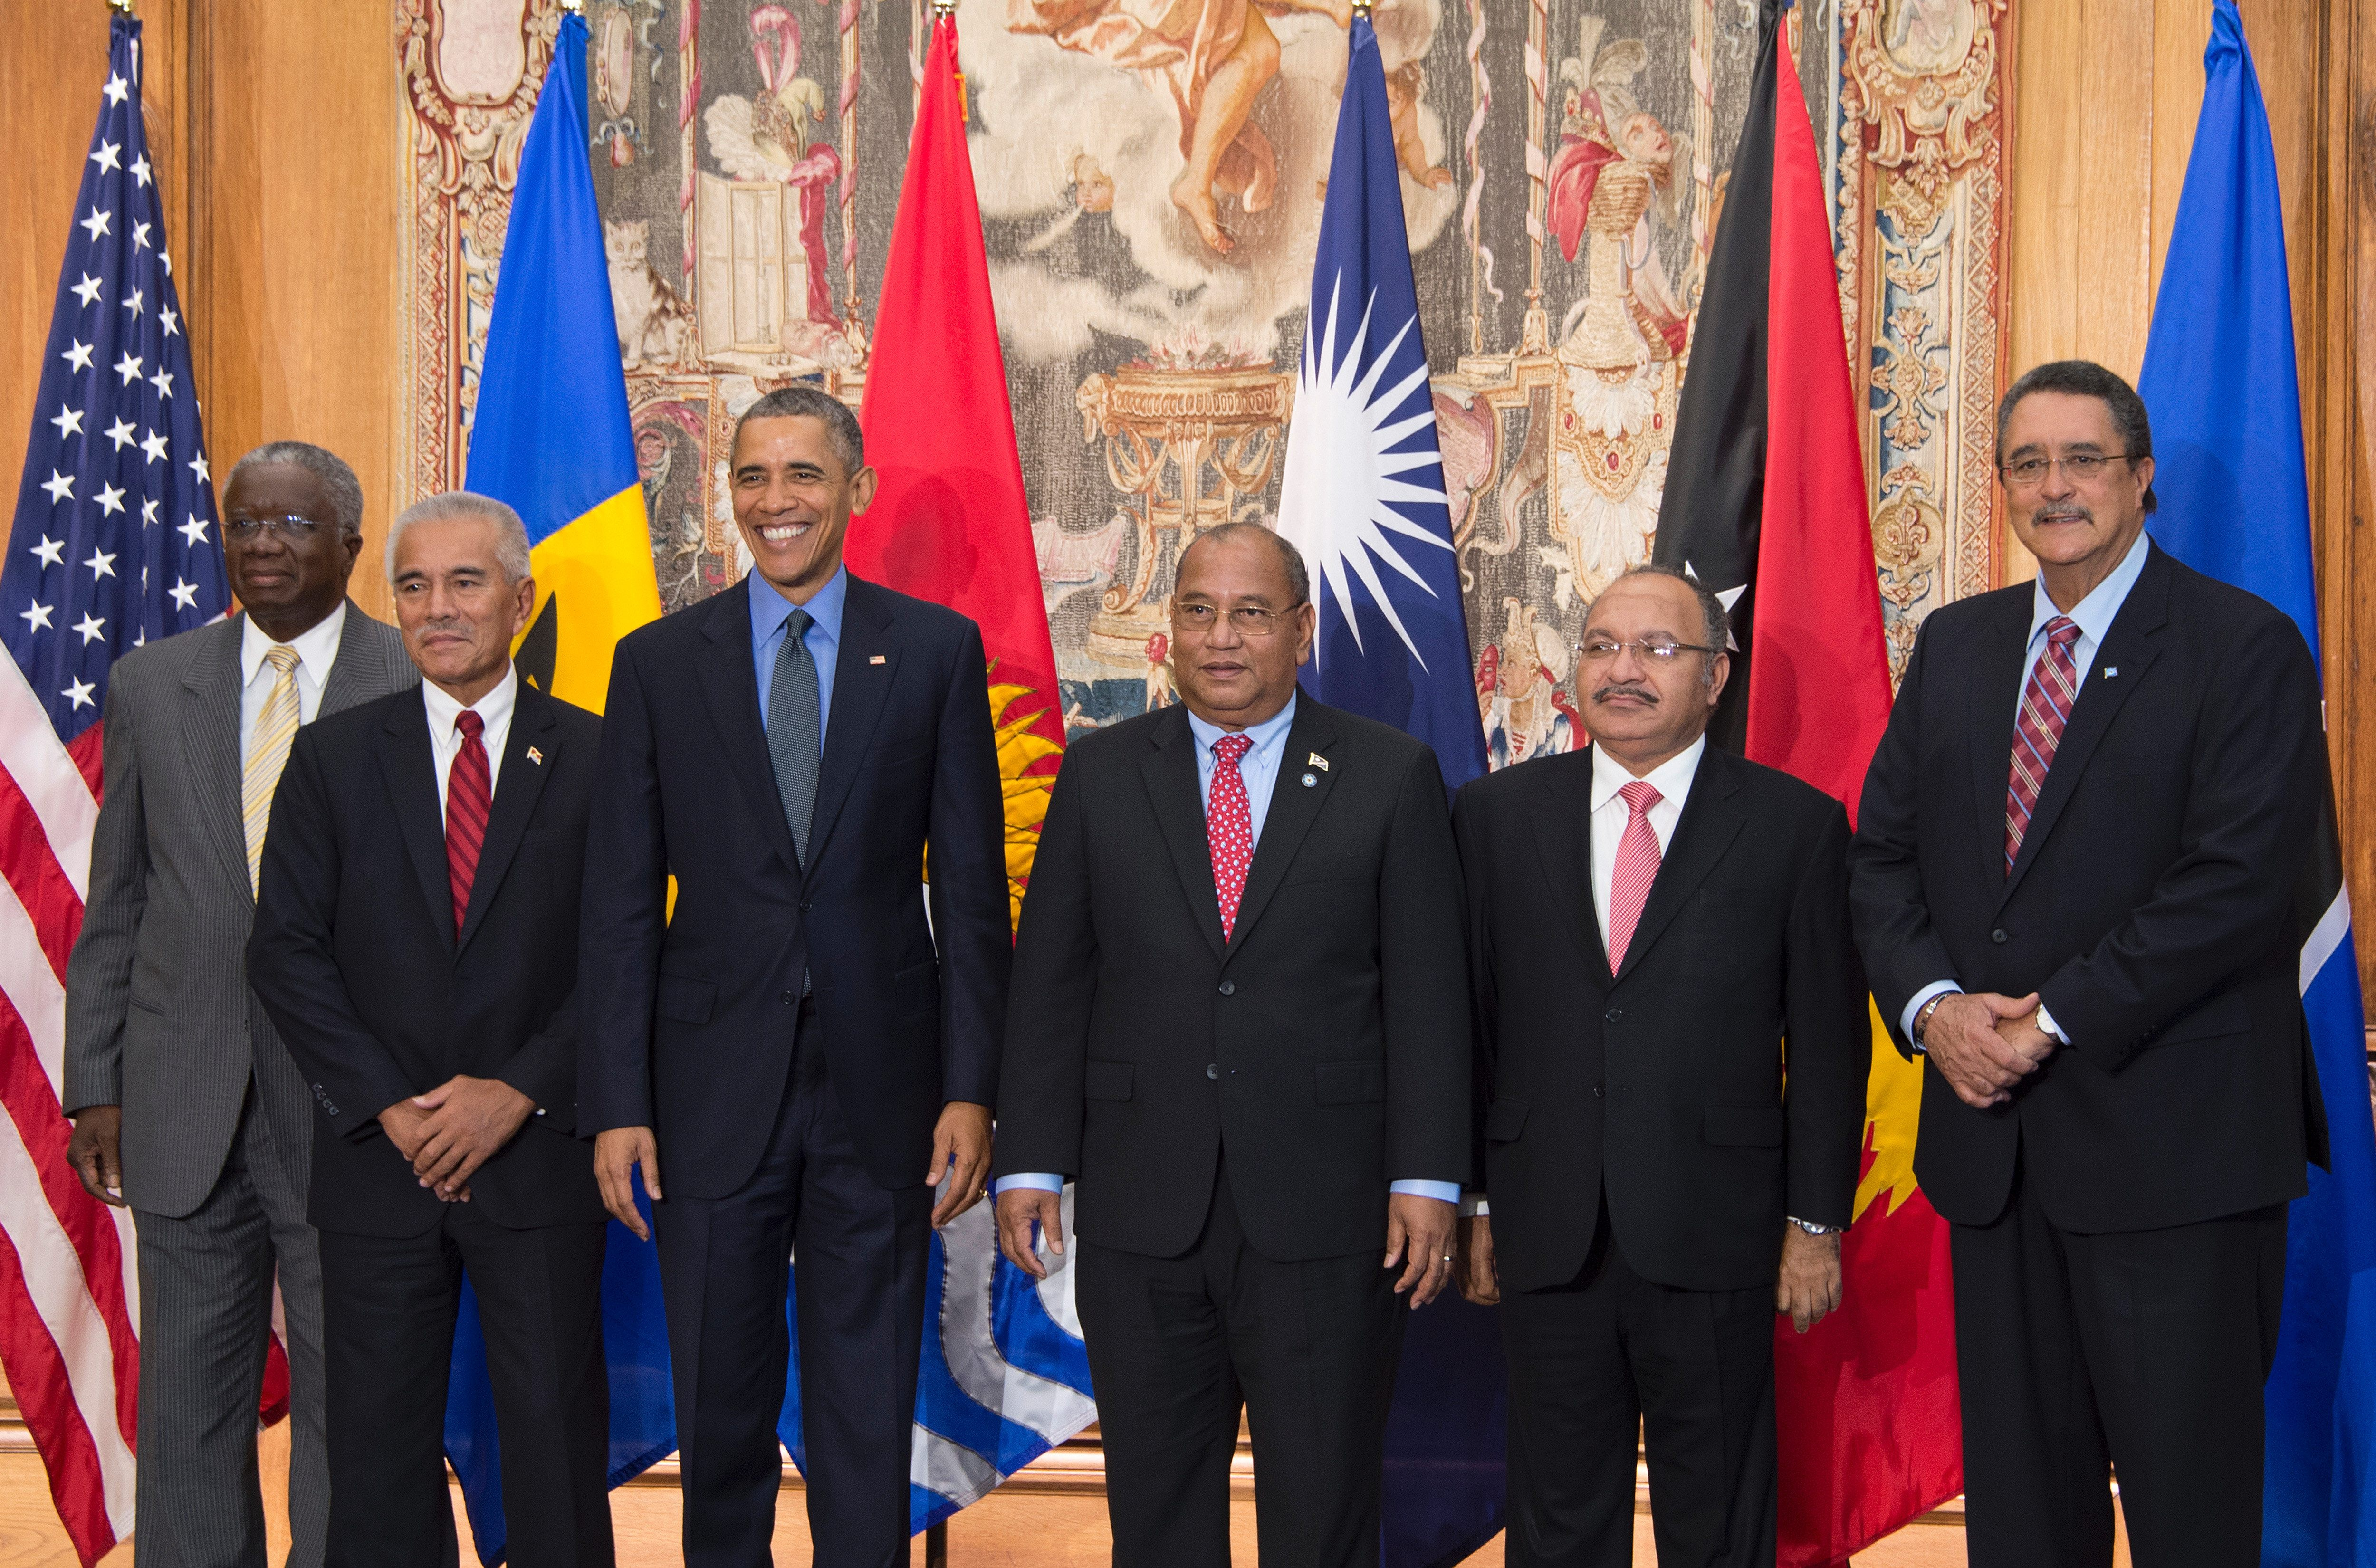 US President Barack Obama poses with, from left to right, Barbados Prime Minister Freundel Stuart, Kiribati President Anote Tong, Marshall Islands President Christopher Loeak, Papua New Guinea Prime Minister Peter O'Neil and St. Lucia Prime Minister Kenny Anthony during a family photo for the small island nations in Paris on Dec. 1.